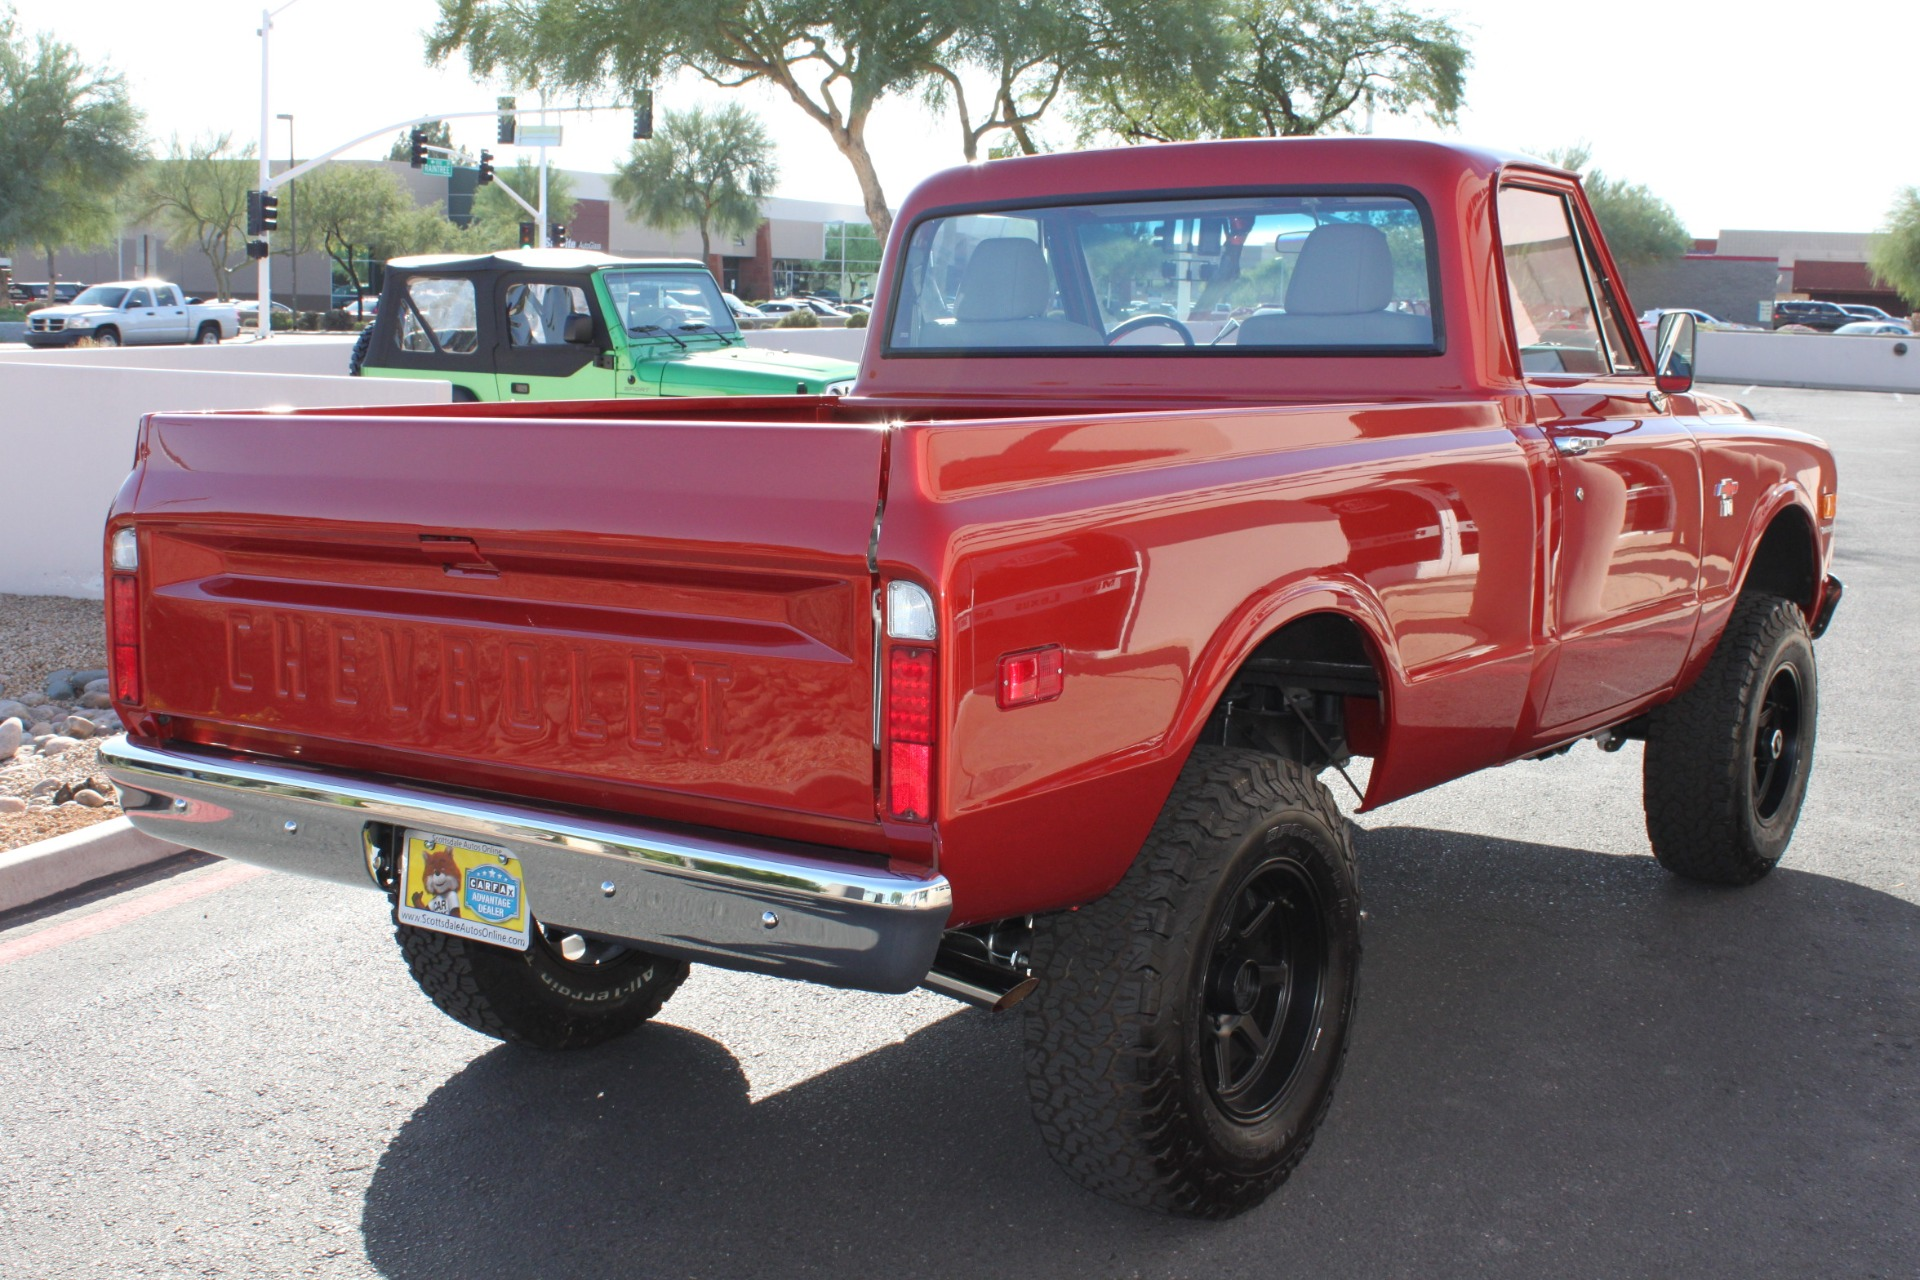 Used-1968-Chevrolet-K10-(C10)-1/2-Ton-Short-Bed-4X4-Mercedes-Benz